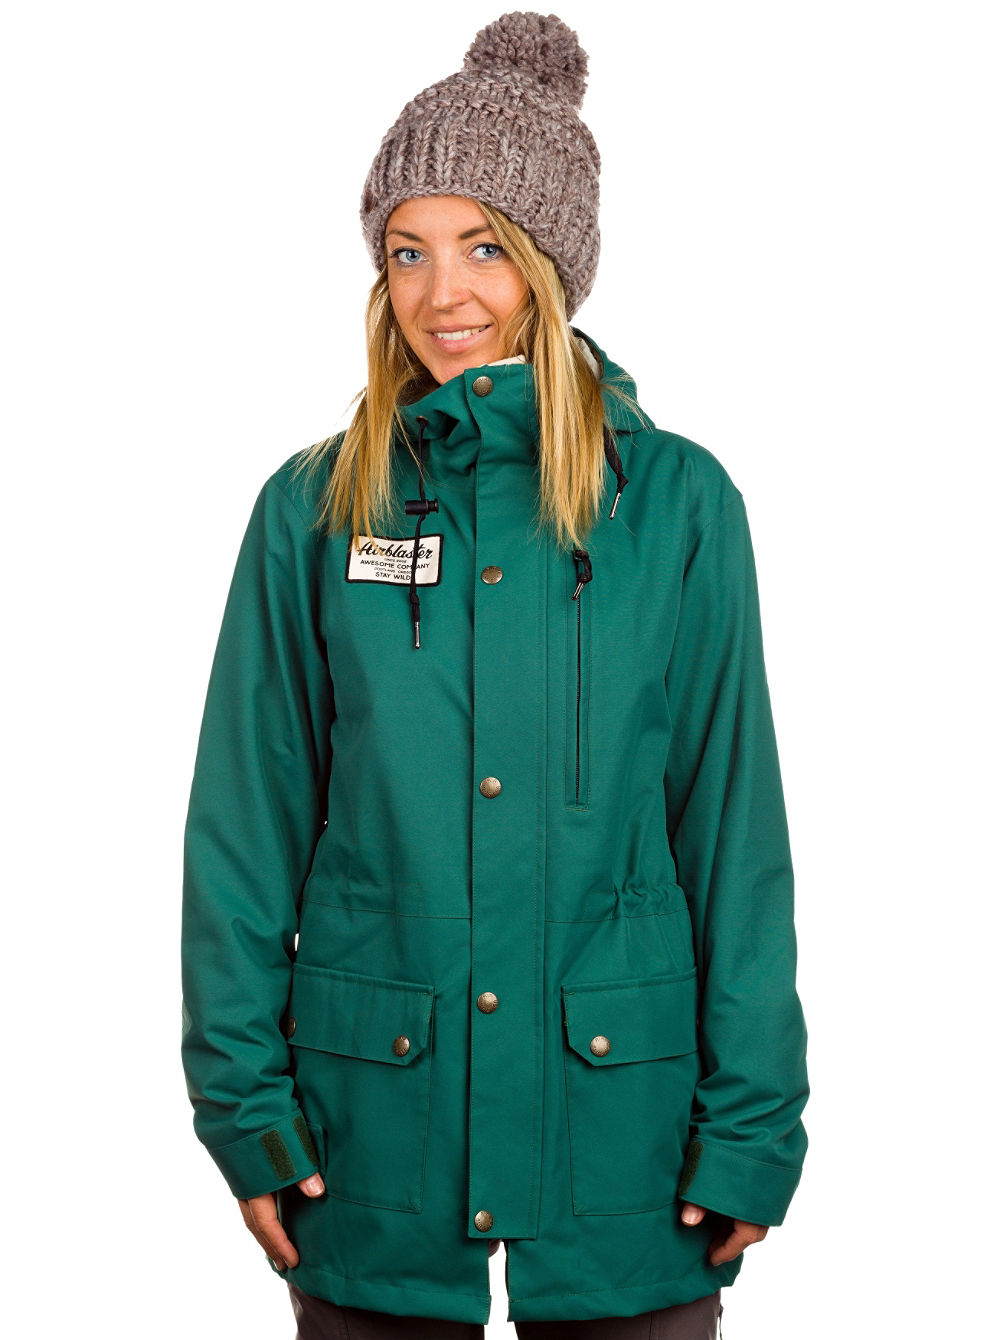 Buy Airblaster Freedom Parka Jacket online at blue-tomato.com